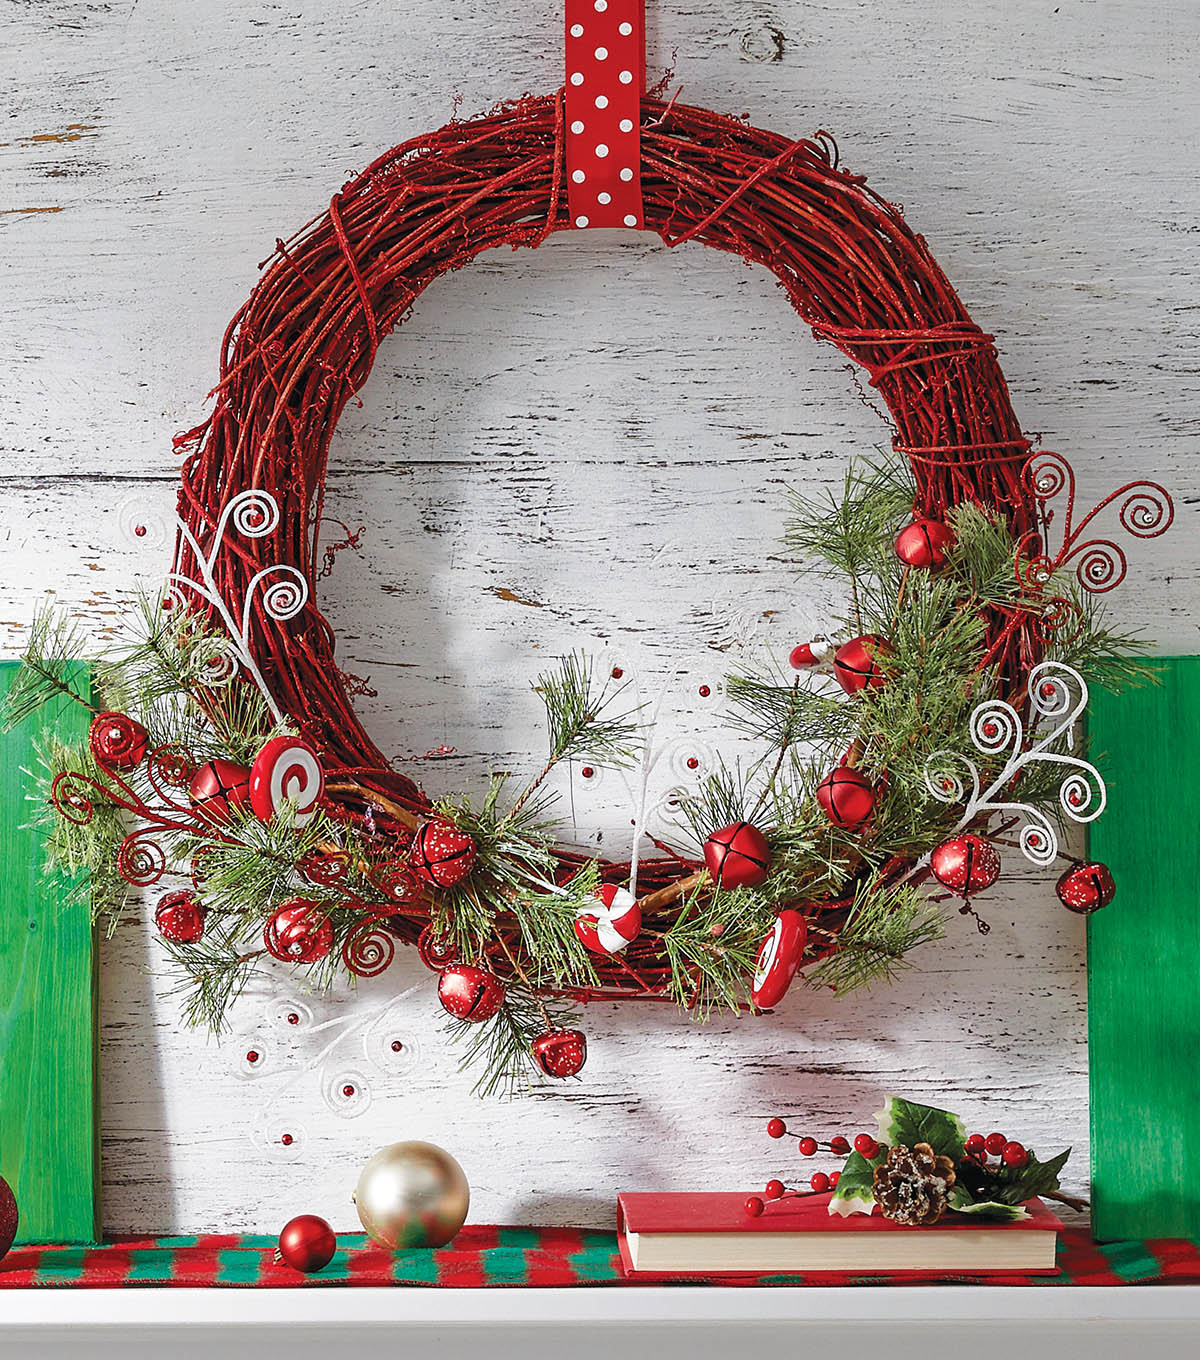 How To Make A Red Candy Wreath